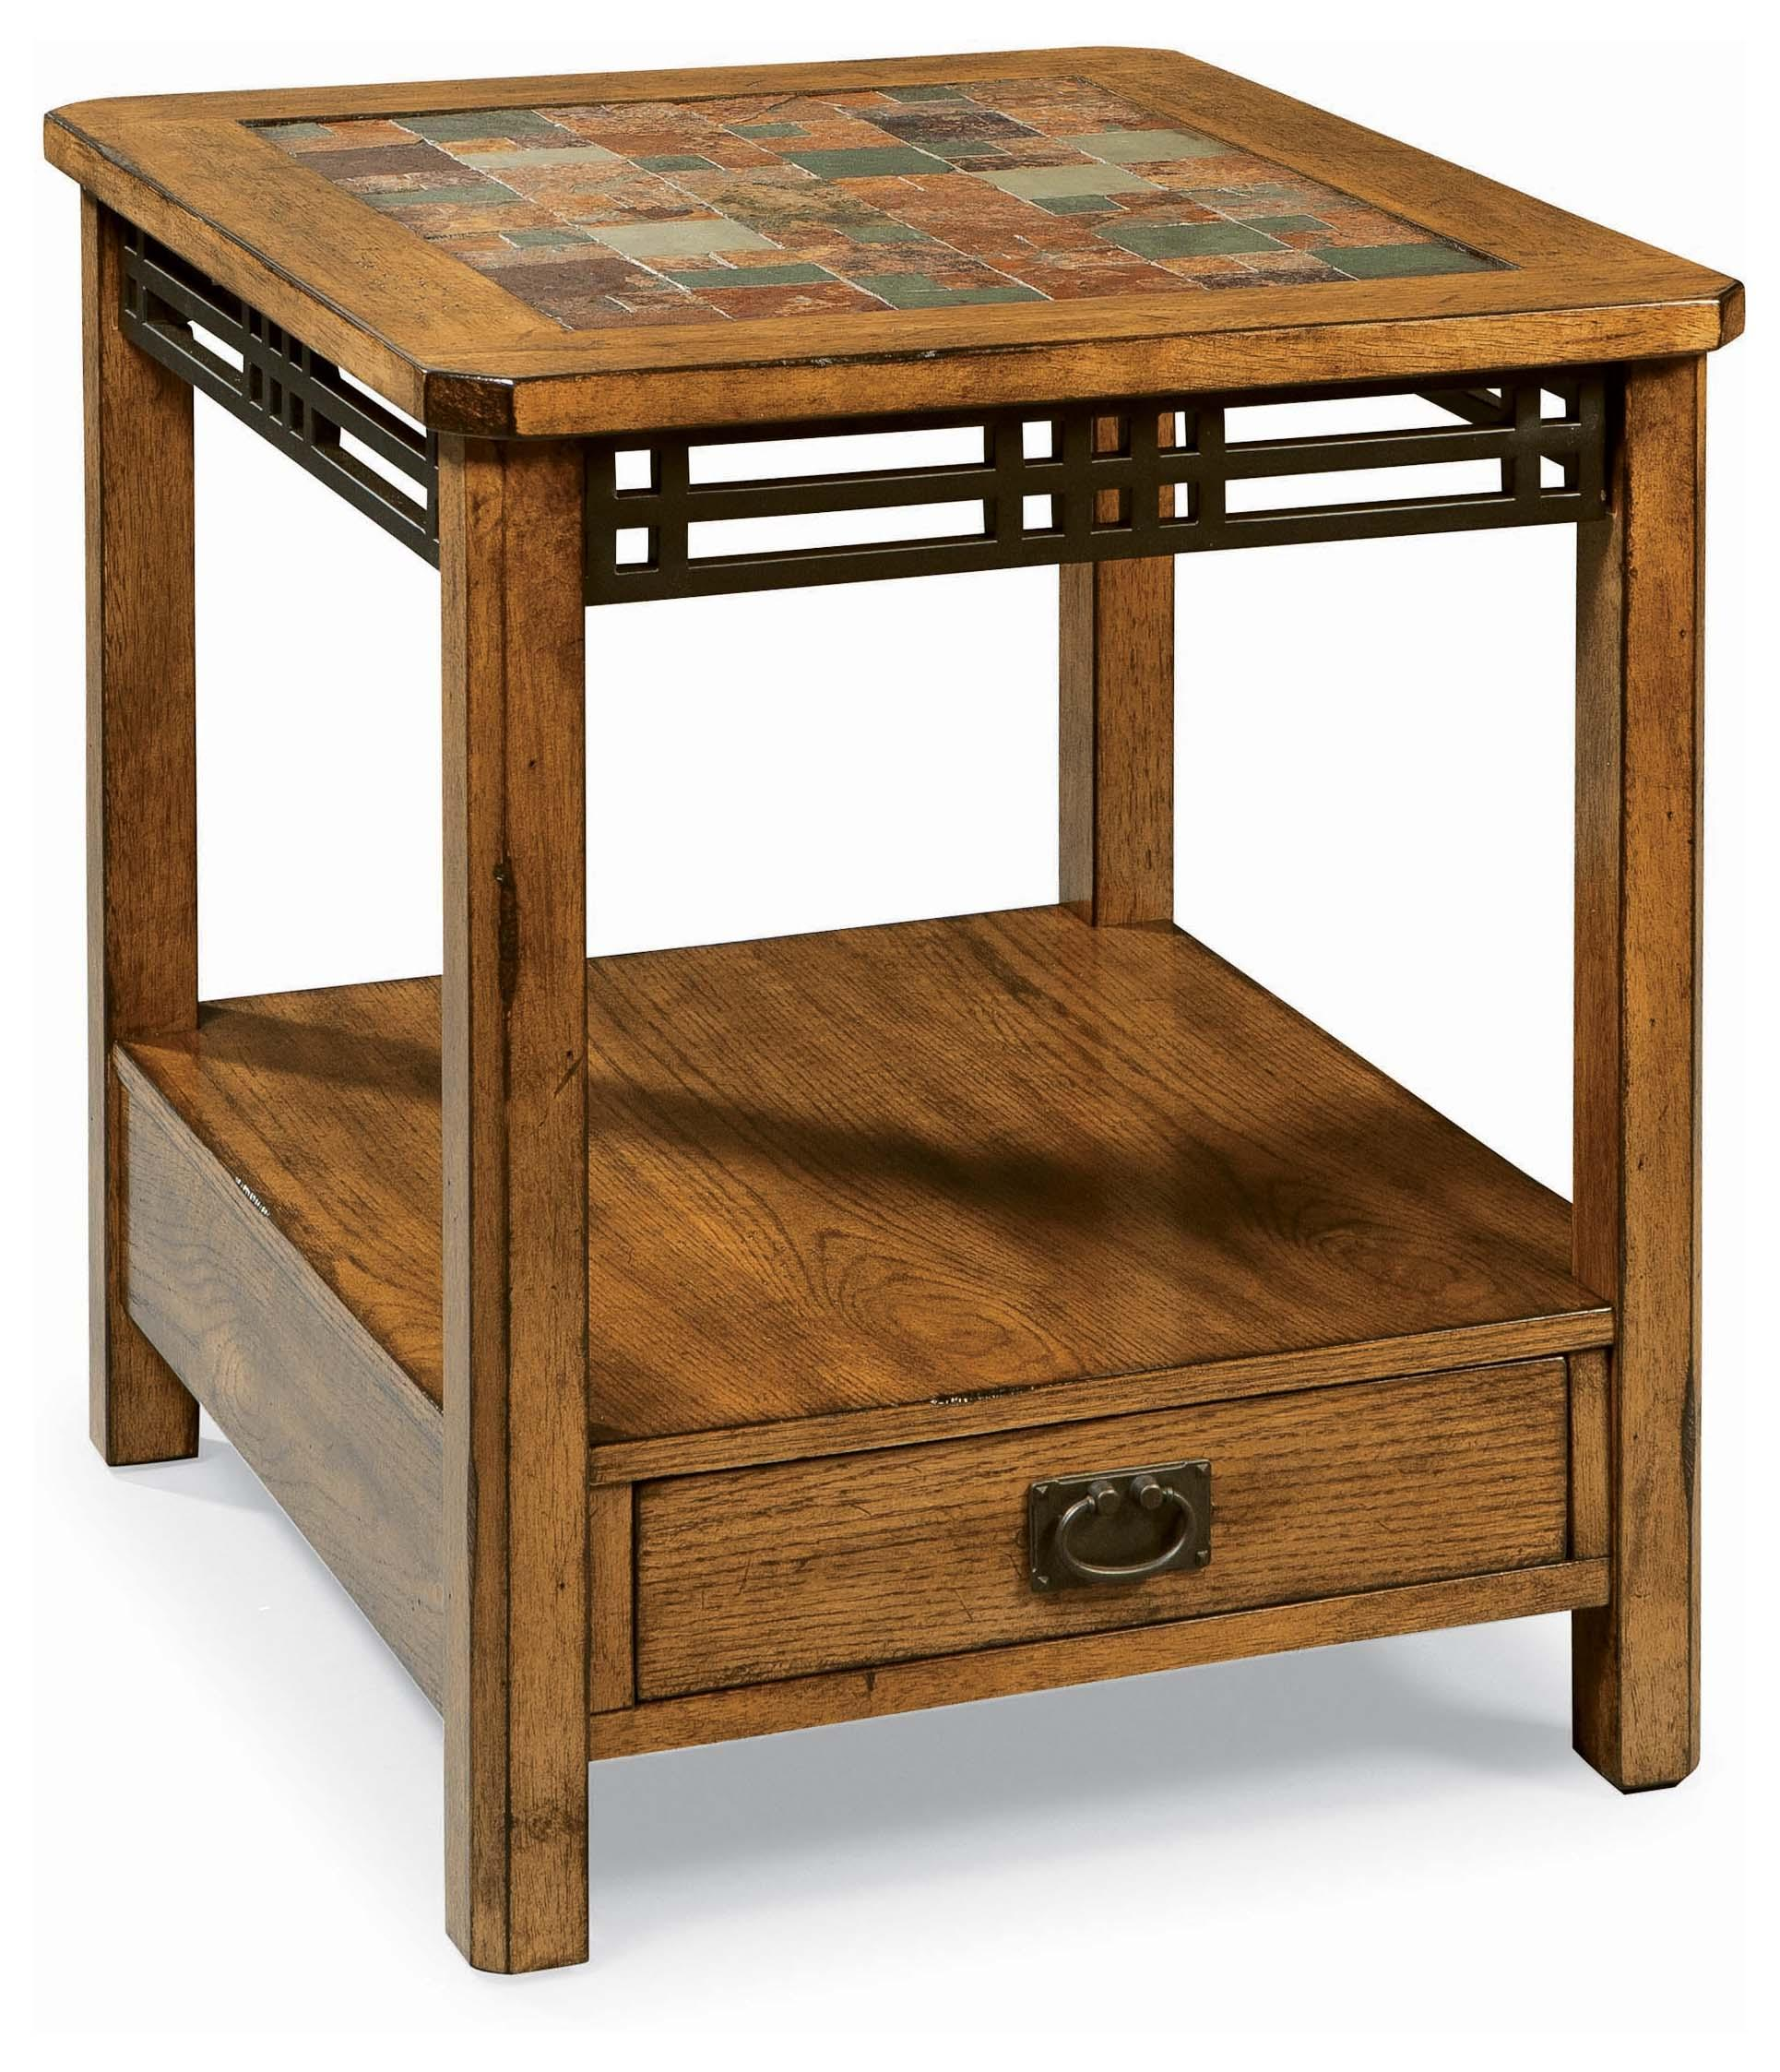 Peters Revington American Craftsman End Table   Item Number: 220822